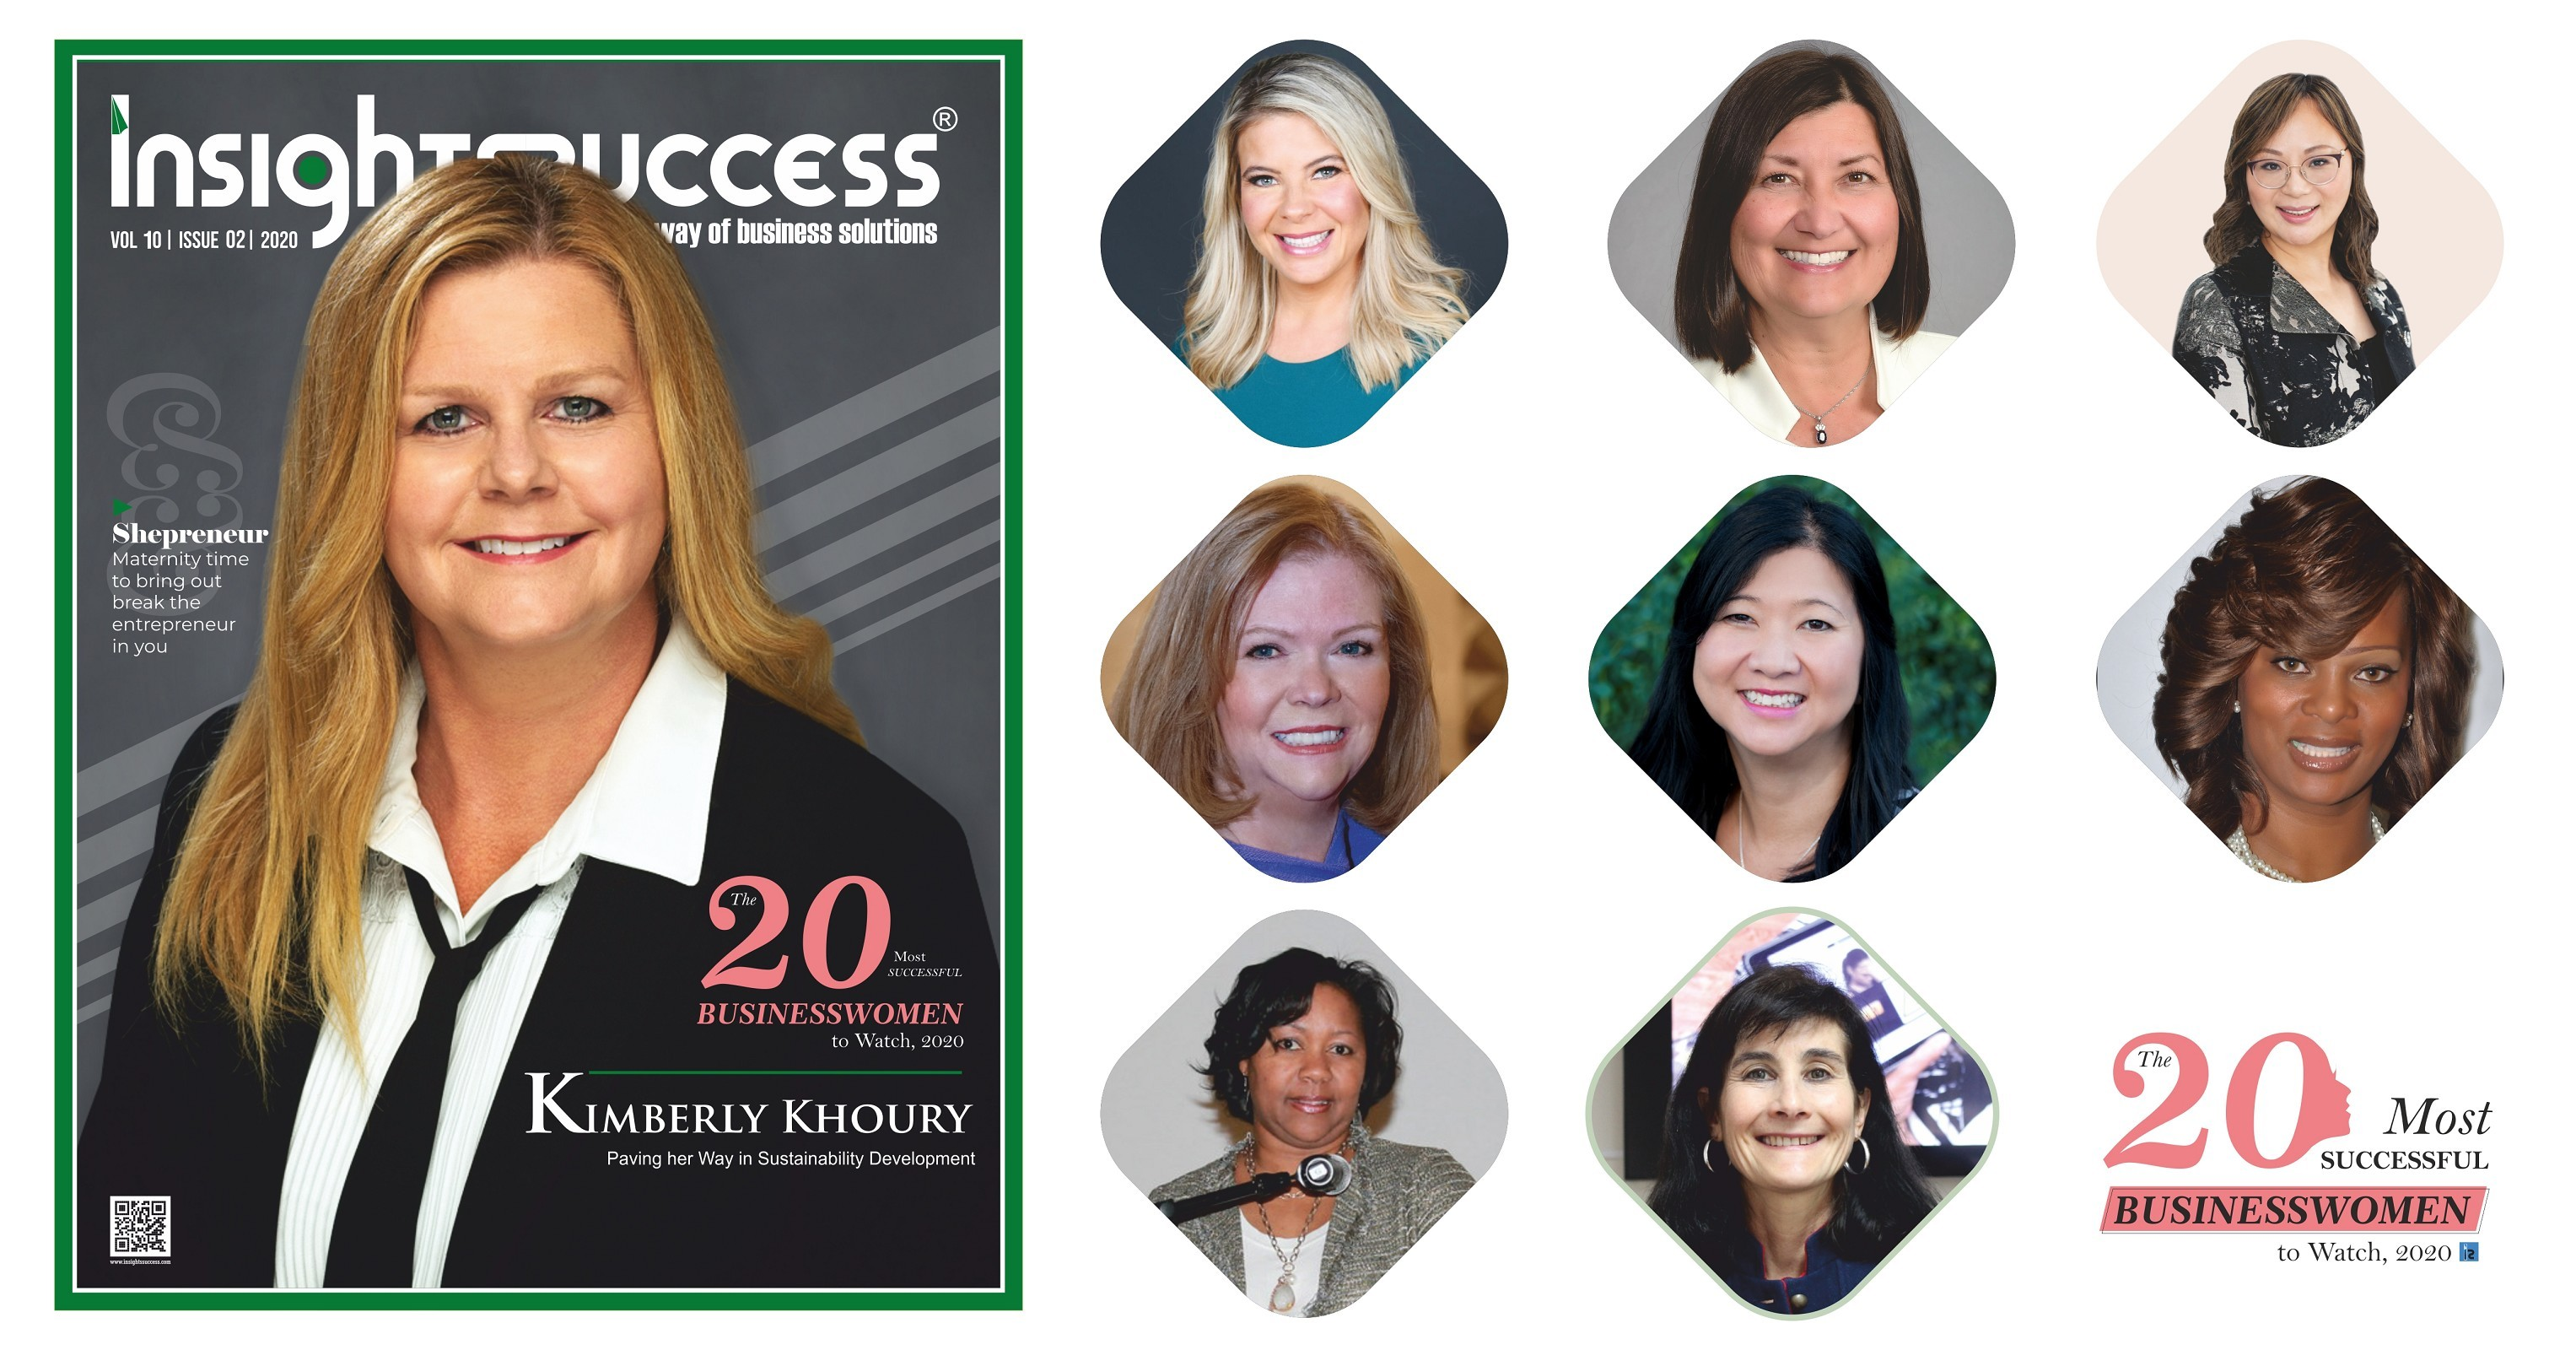 The 20 Most Successful Businesswomen to Watch 2020 October 2020